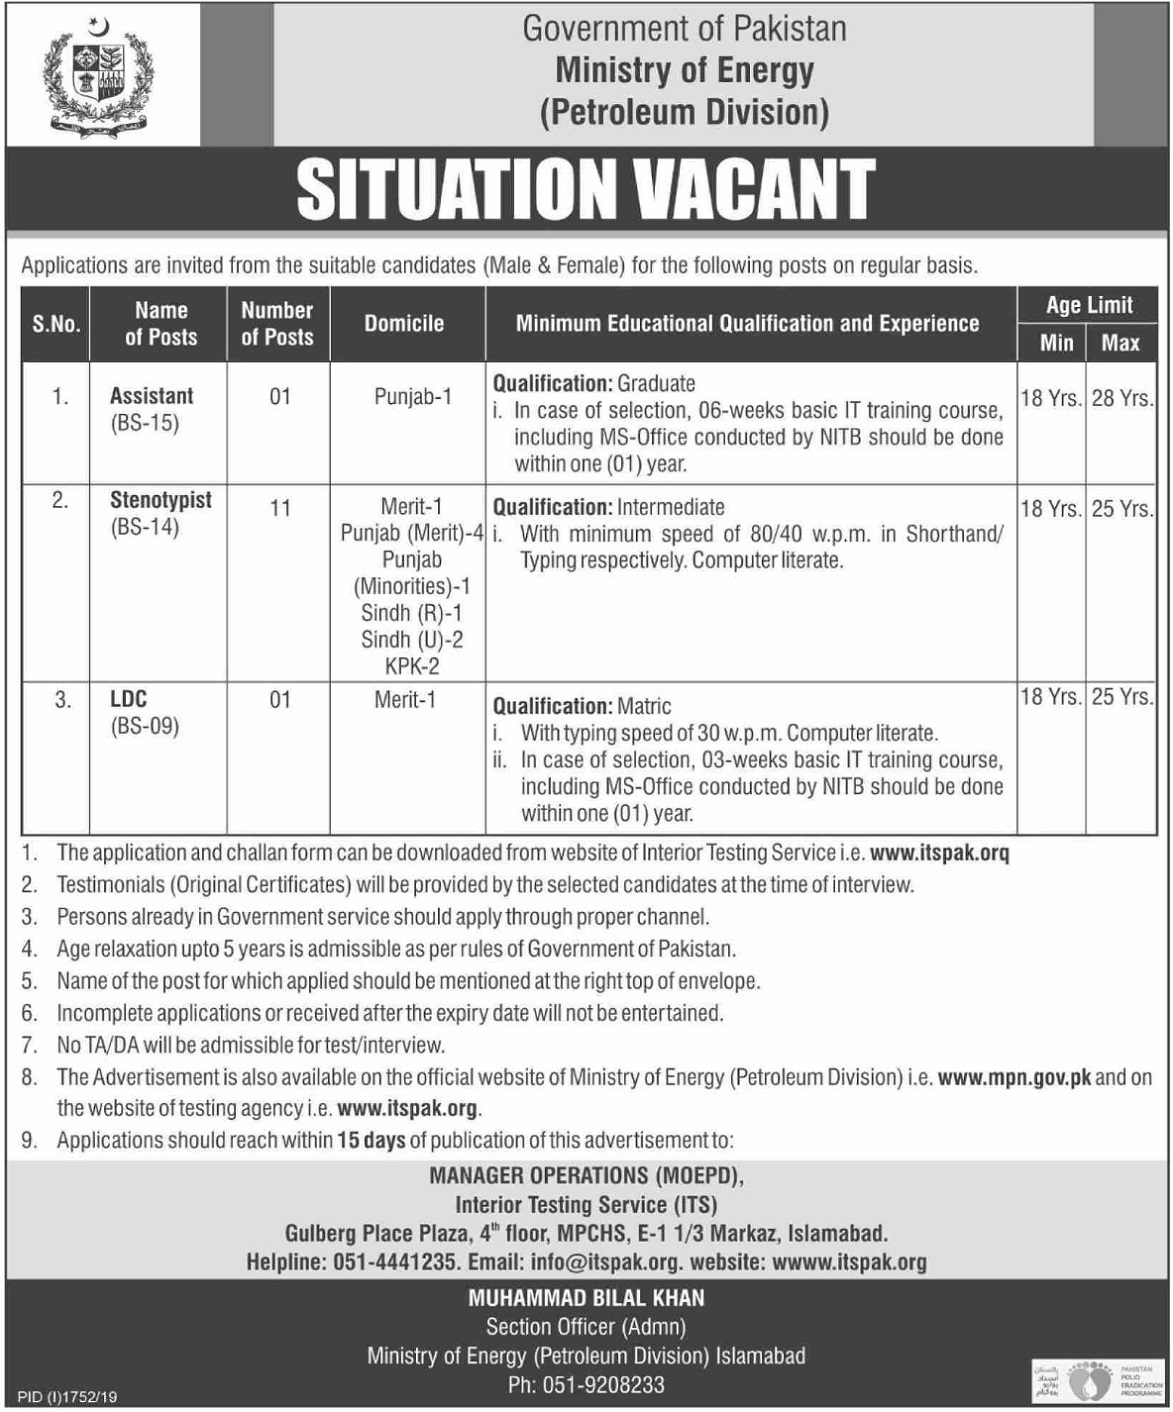 Ministry of Energy Petroleum Division Jobs 2019